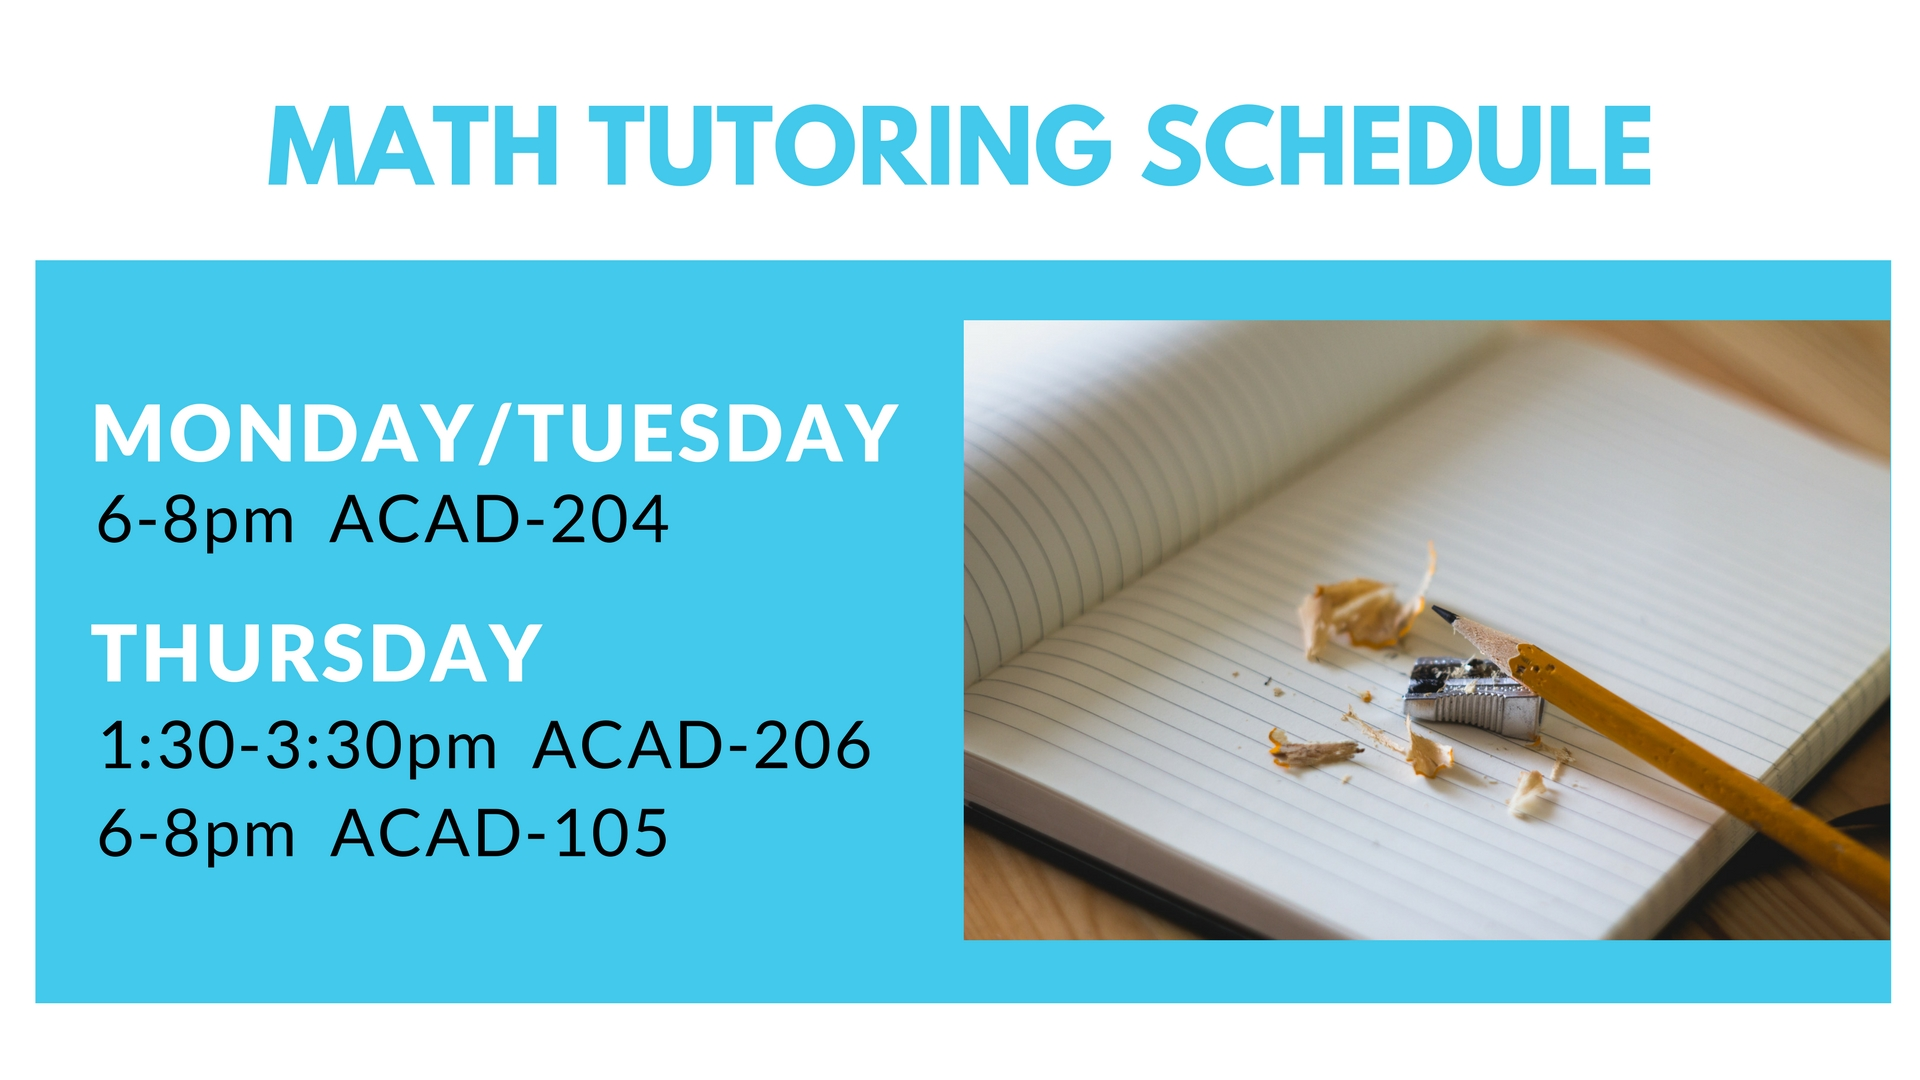 Math Tutoring Schedule (Digital Signage)